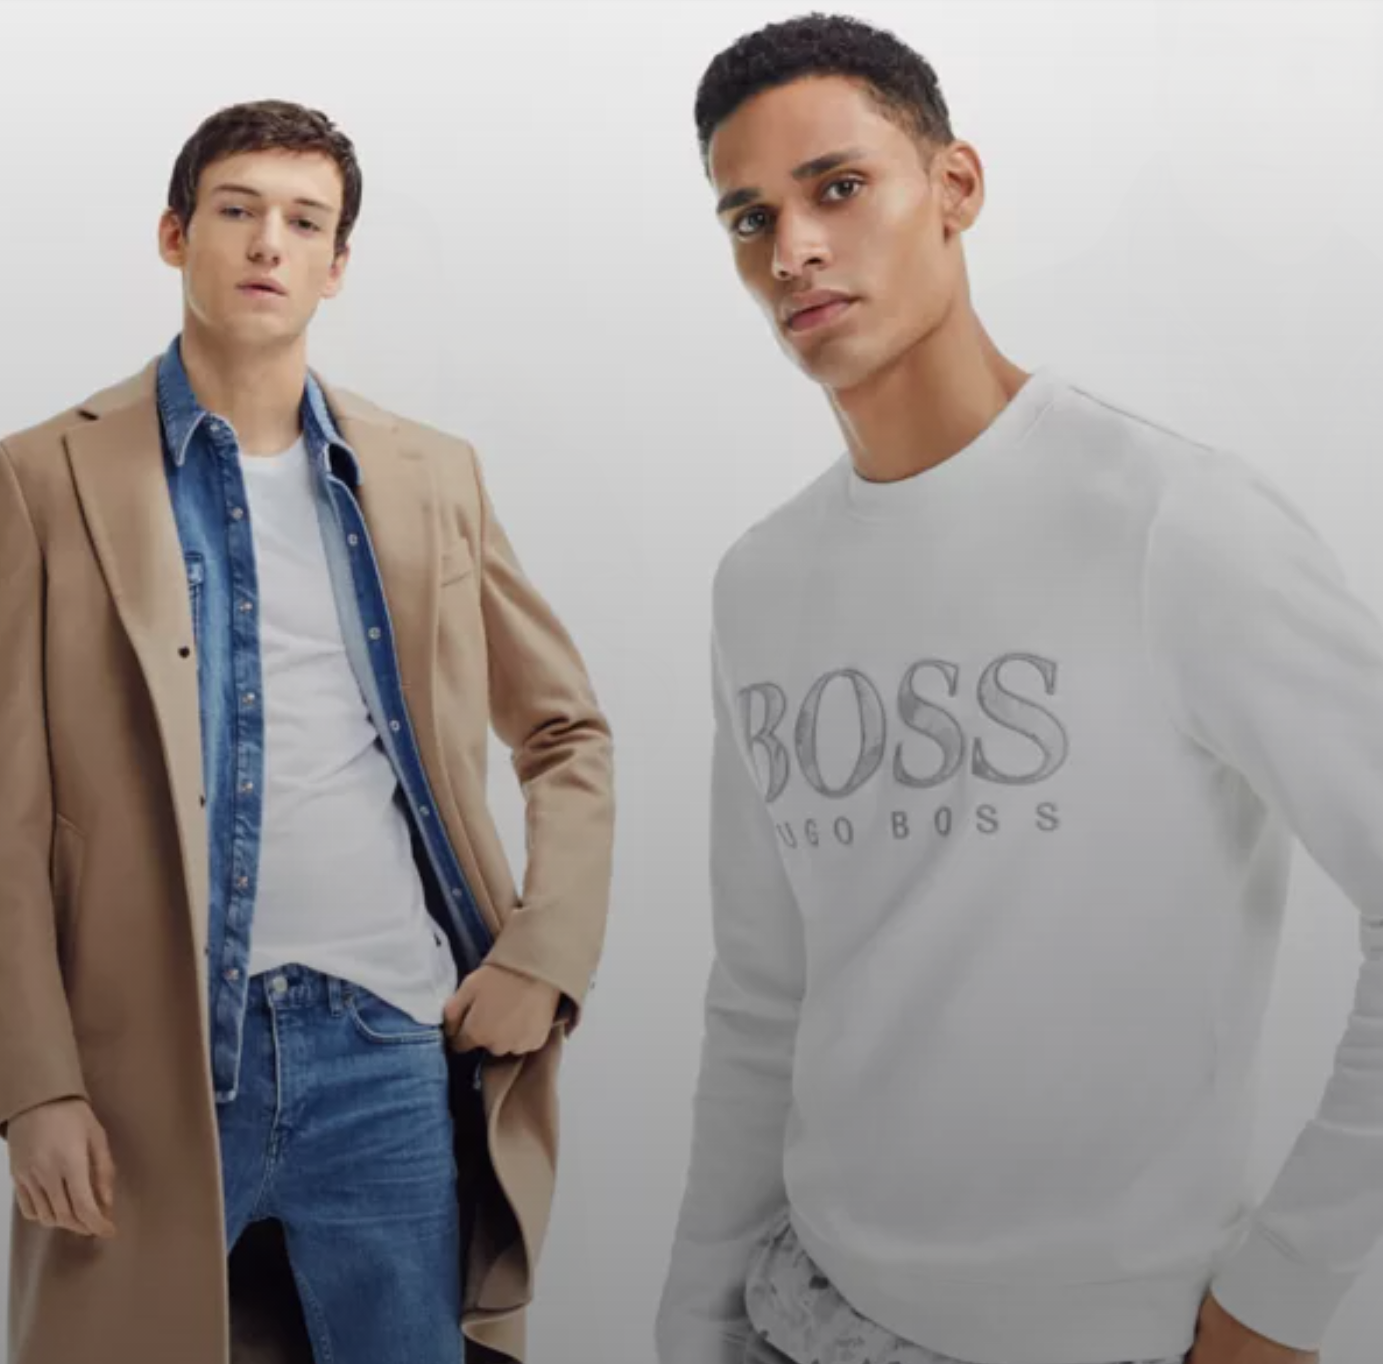 Hugo Boss: Up to 60% Off Sitewide